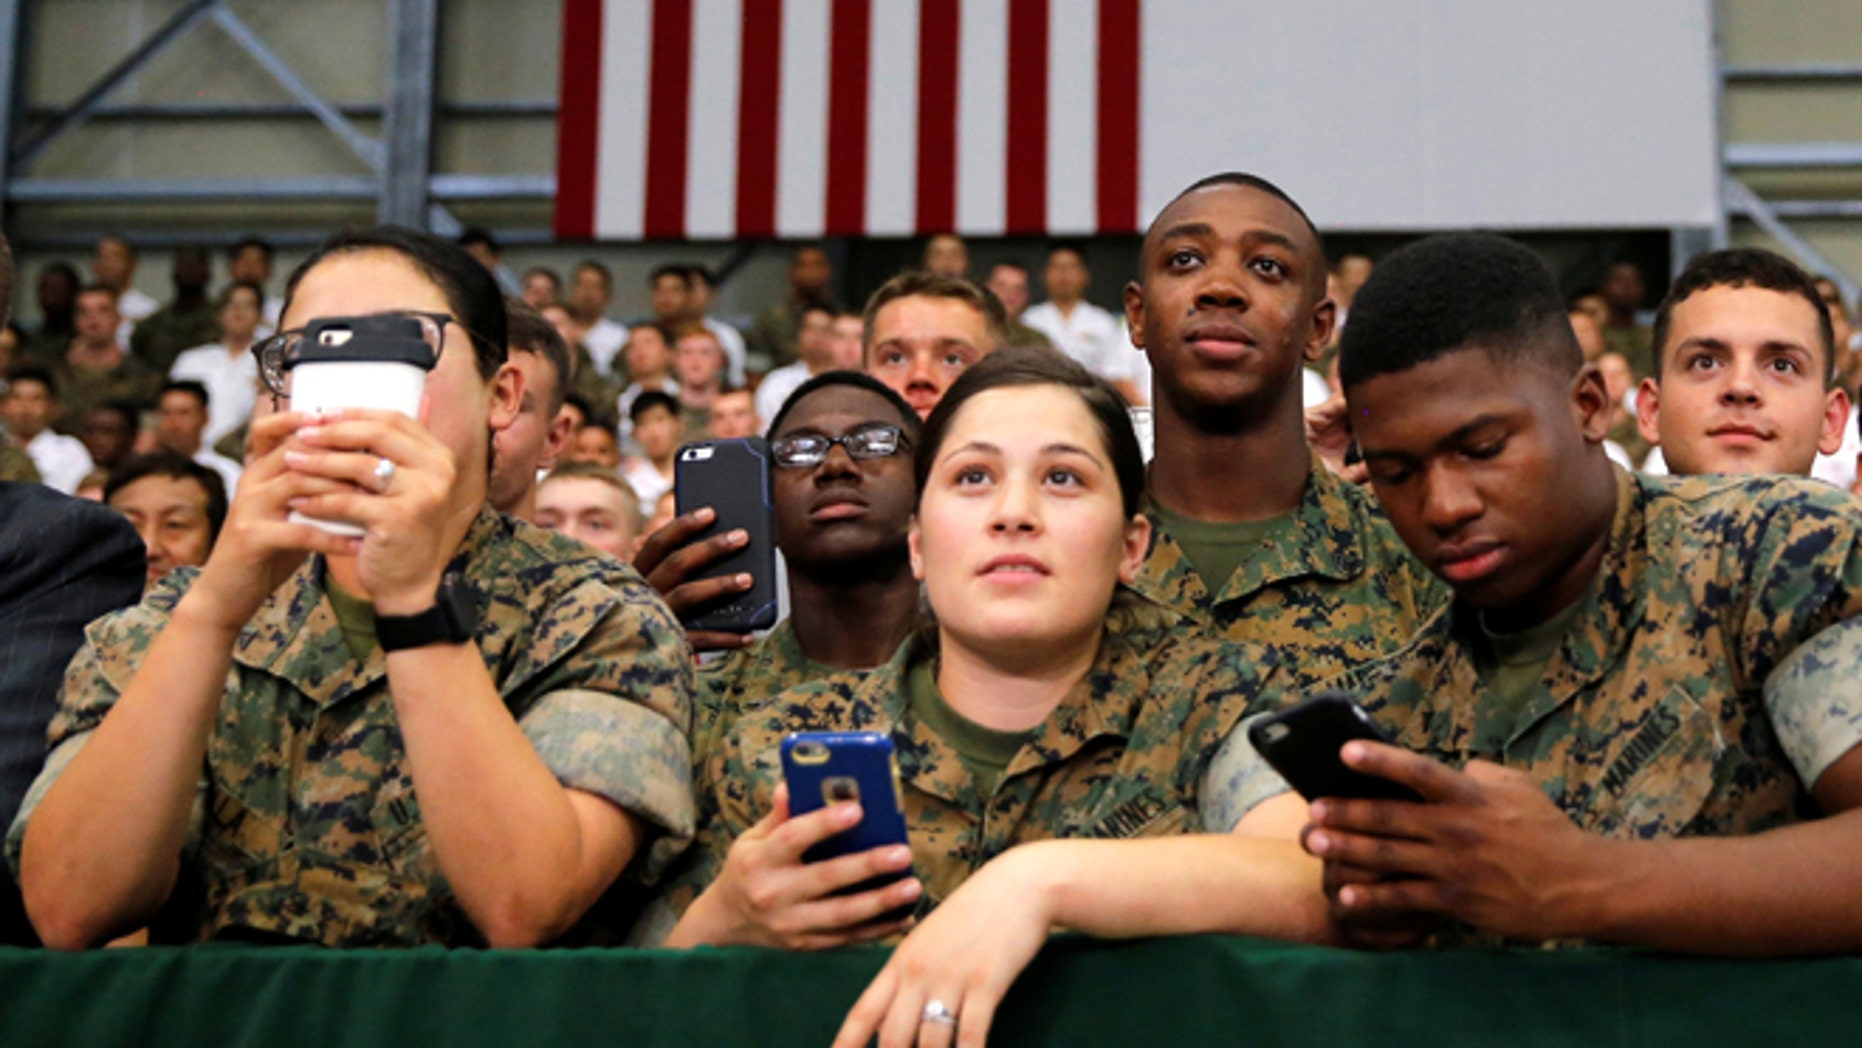 May 27, 2016: U.S. and Japan Self-Defence Force's soldiers listen to a speech by President Obama during his visit at Iwakuni Marine Corps Air Station, Japan. (Reuters)